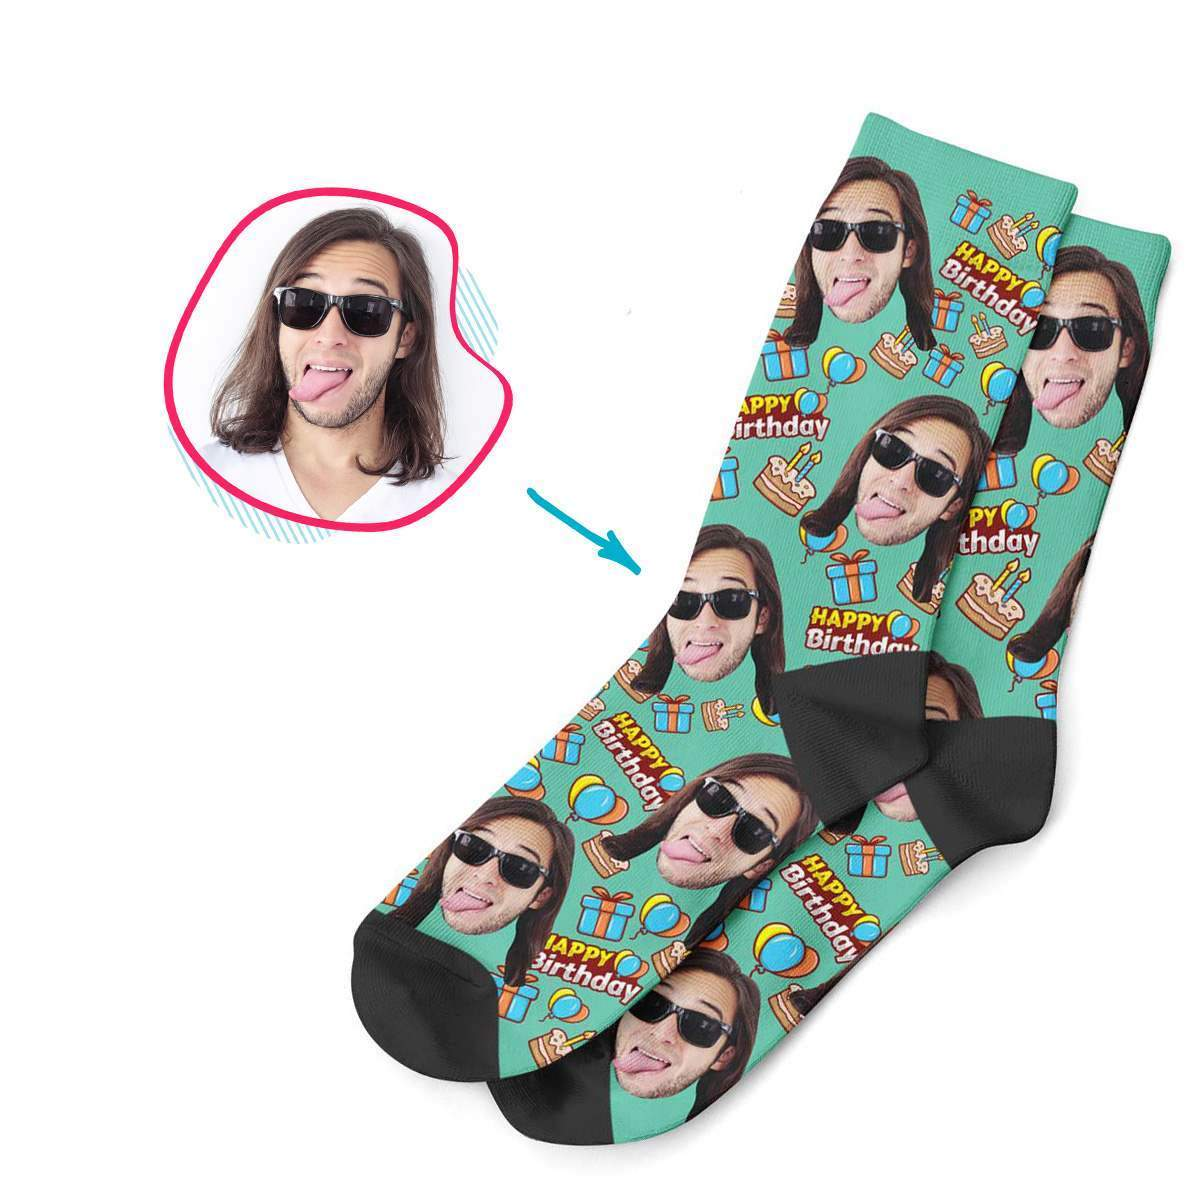 mint Birthday socks personalized with photo of face printed on them